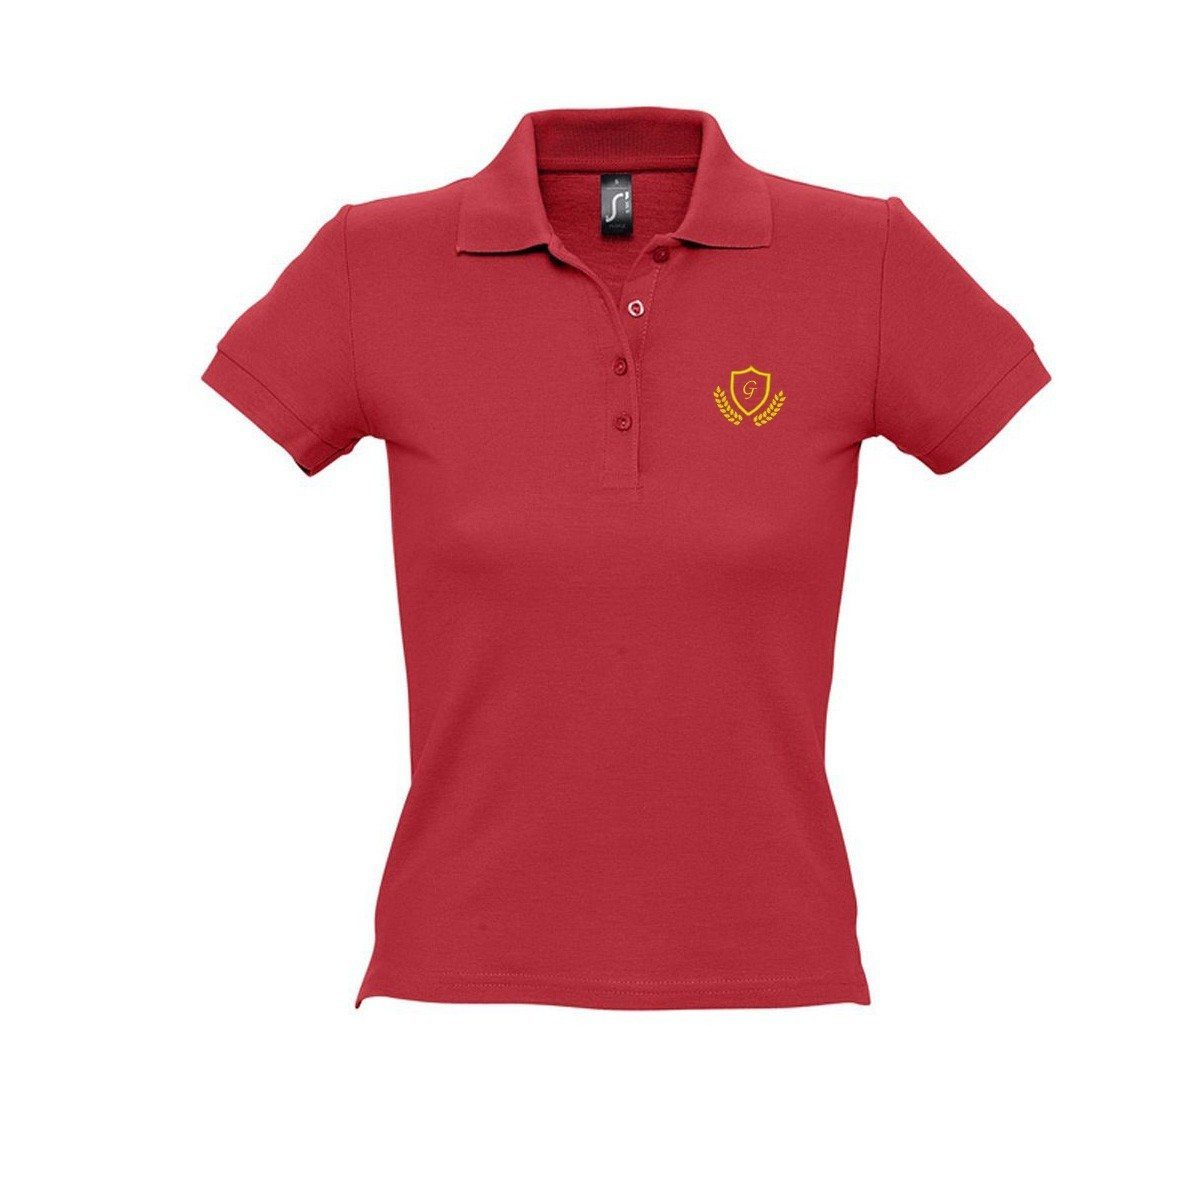 Polo Femme - Broderie personnalisée